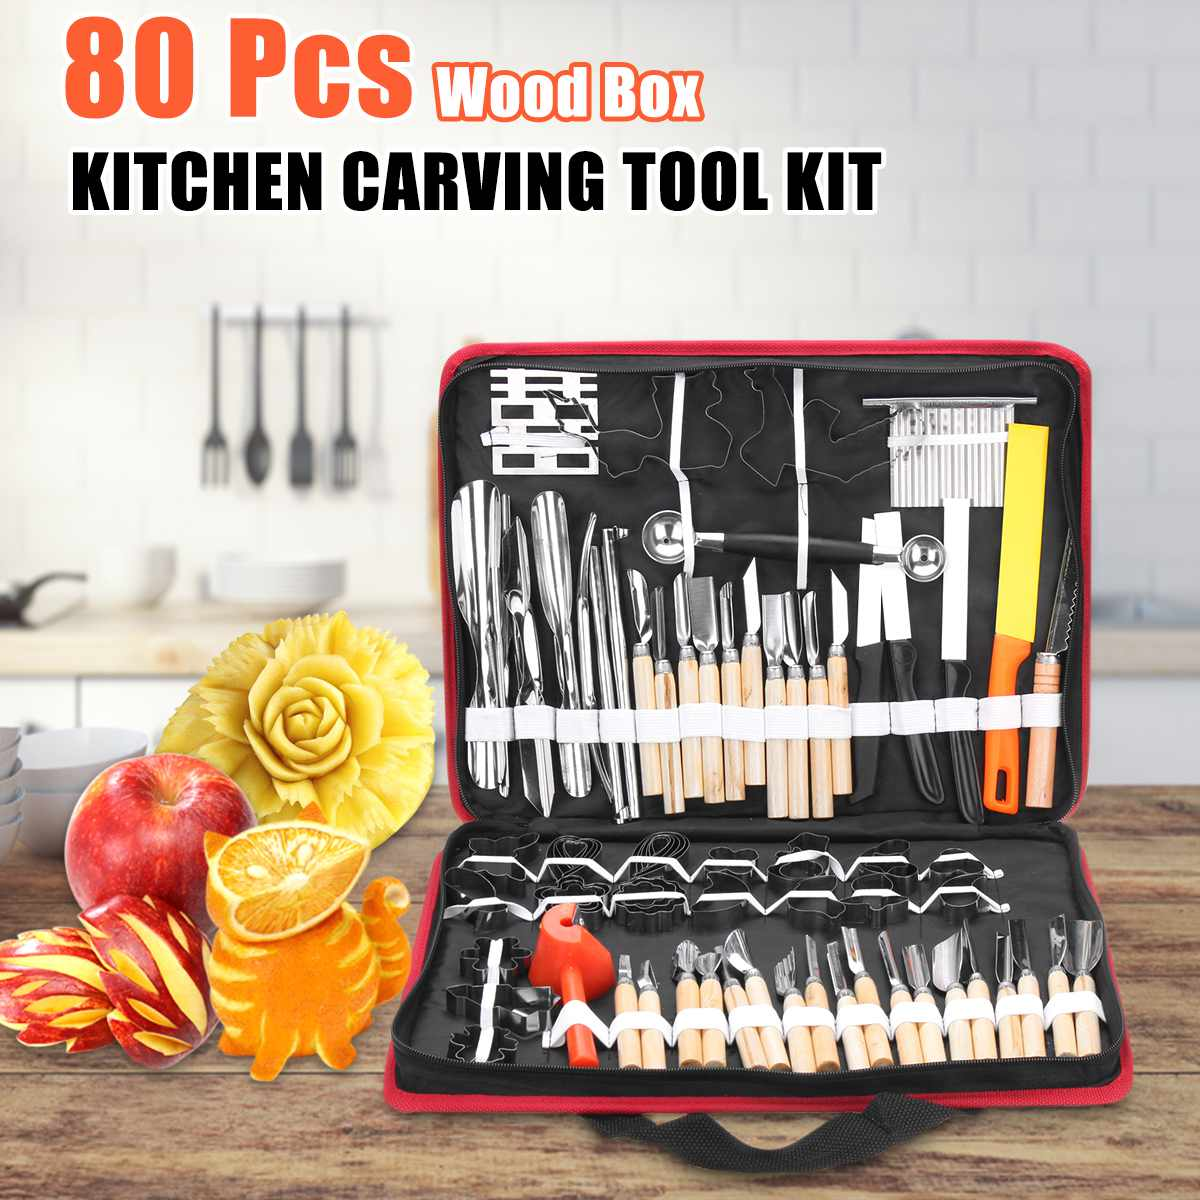 80Pcs Portable Sculpture Carving Tool with Portable Storage Bag Vegetable Food Fruit Carving Knife Set Cooking Decorating Tools80Pcs Portable Sculpture Carving Tool with Portable Storage Bag Vegetable Food Fruit Carving Knife Set Cooking Decorating Tools